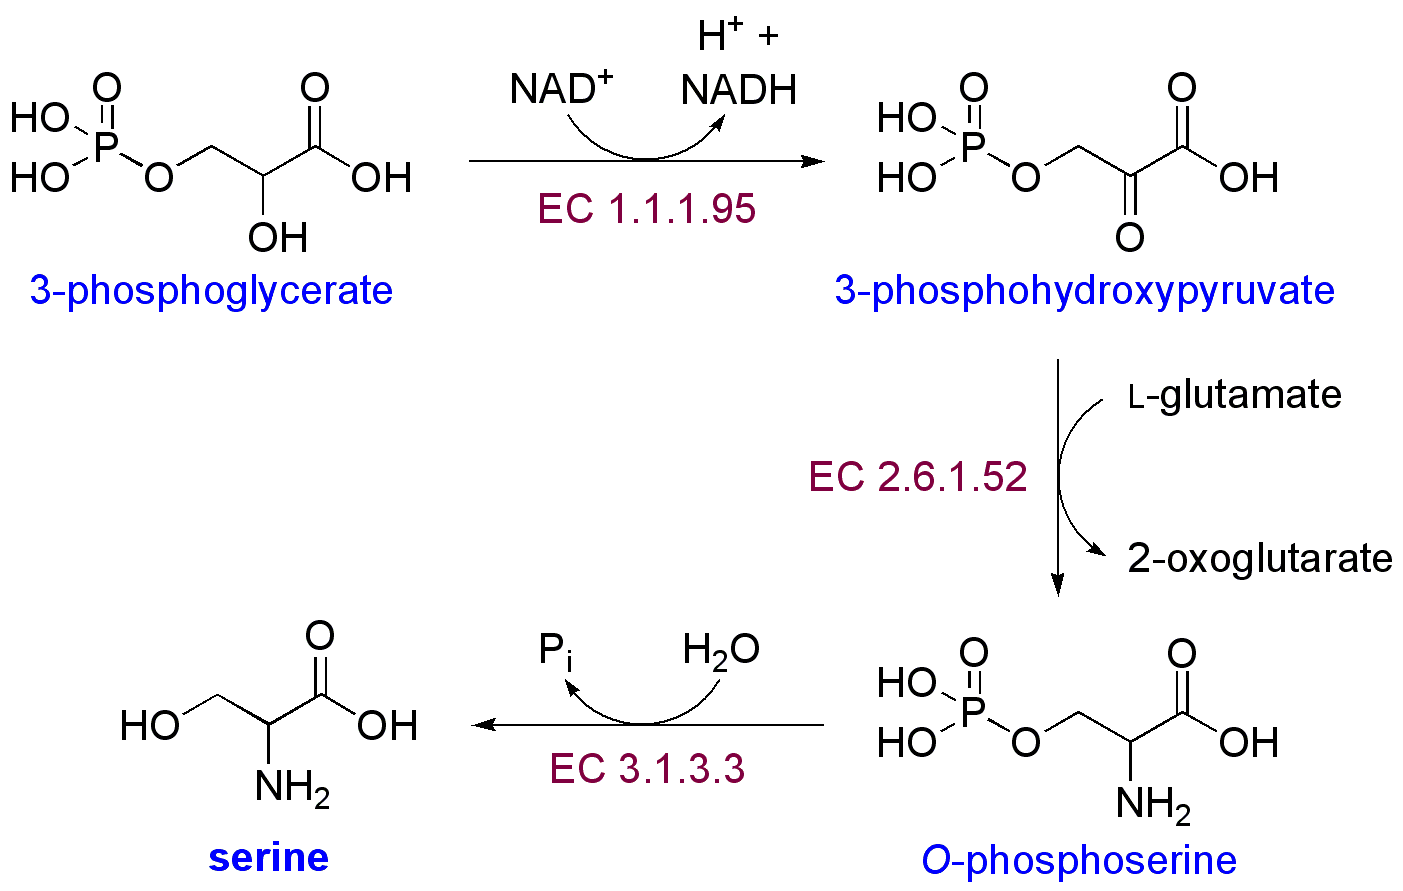 epinephrine peptide or steroid hormone